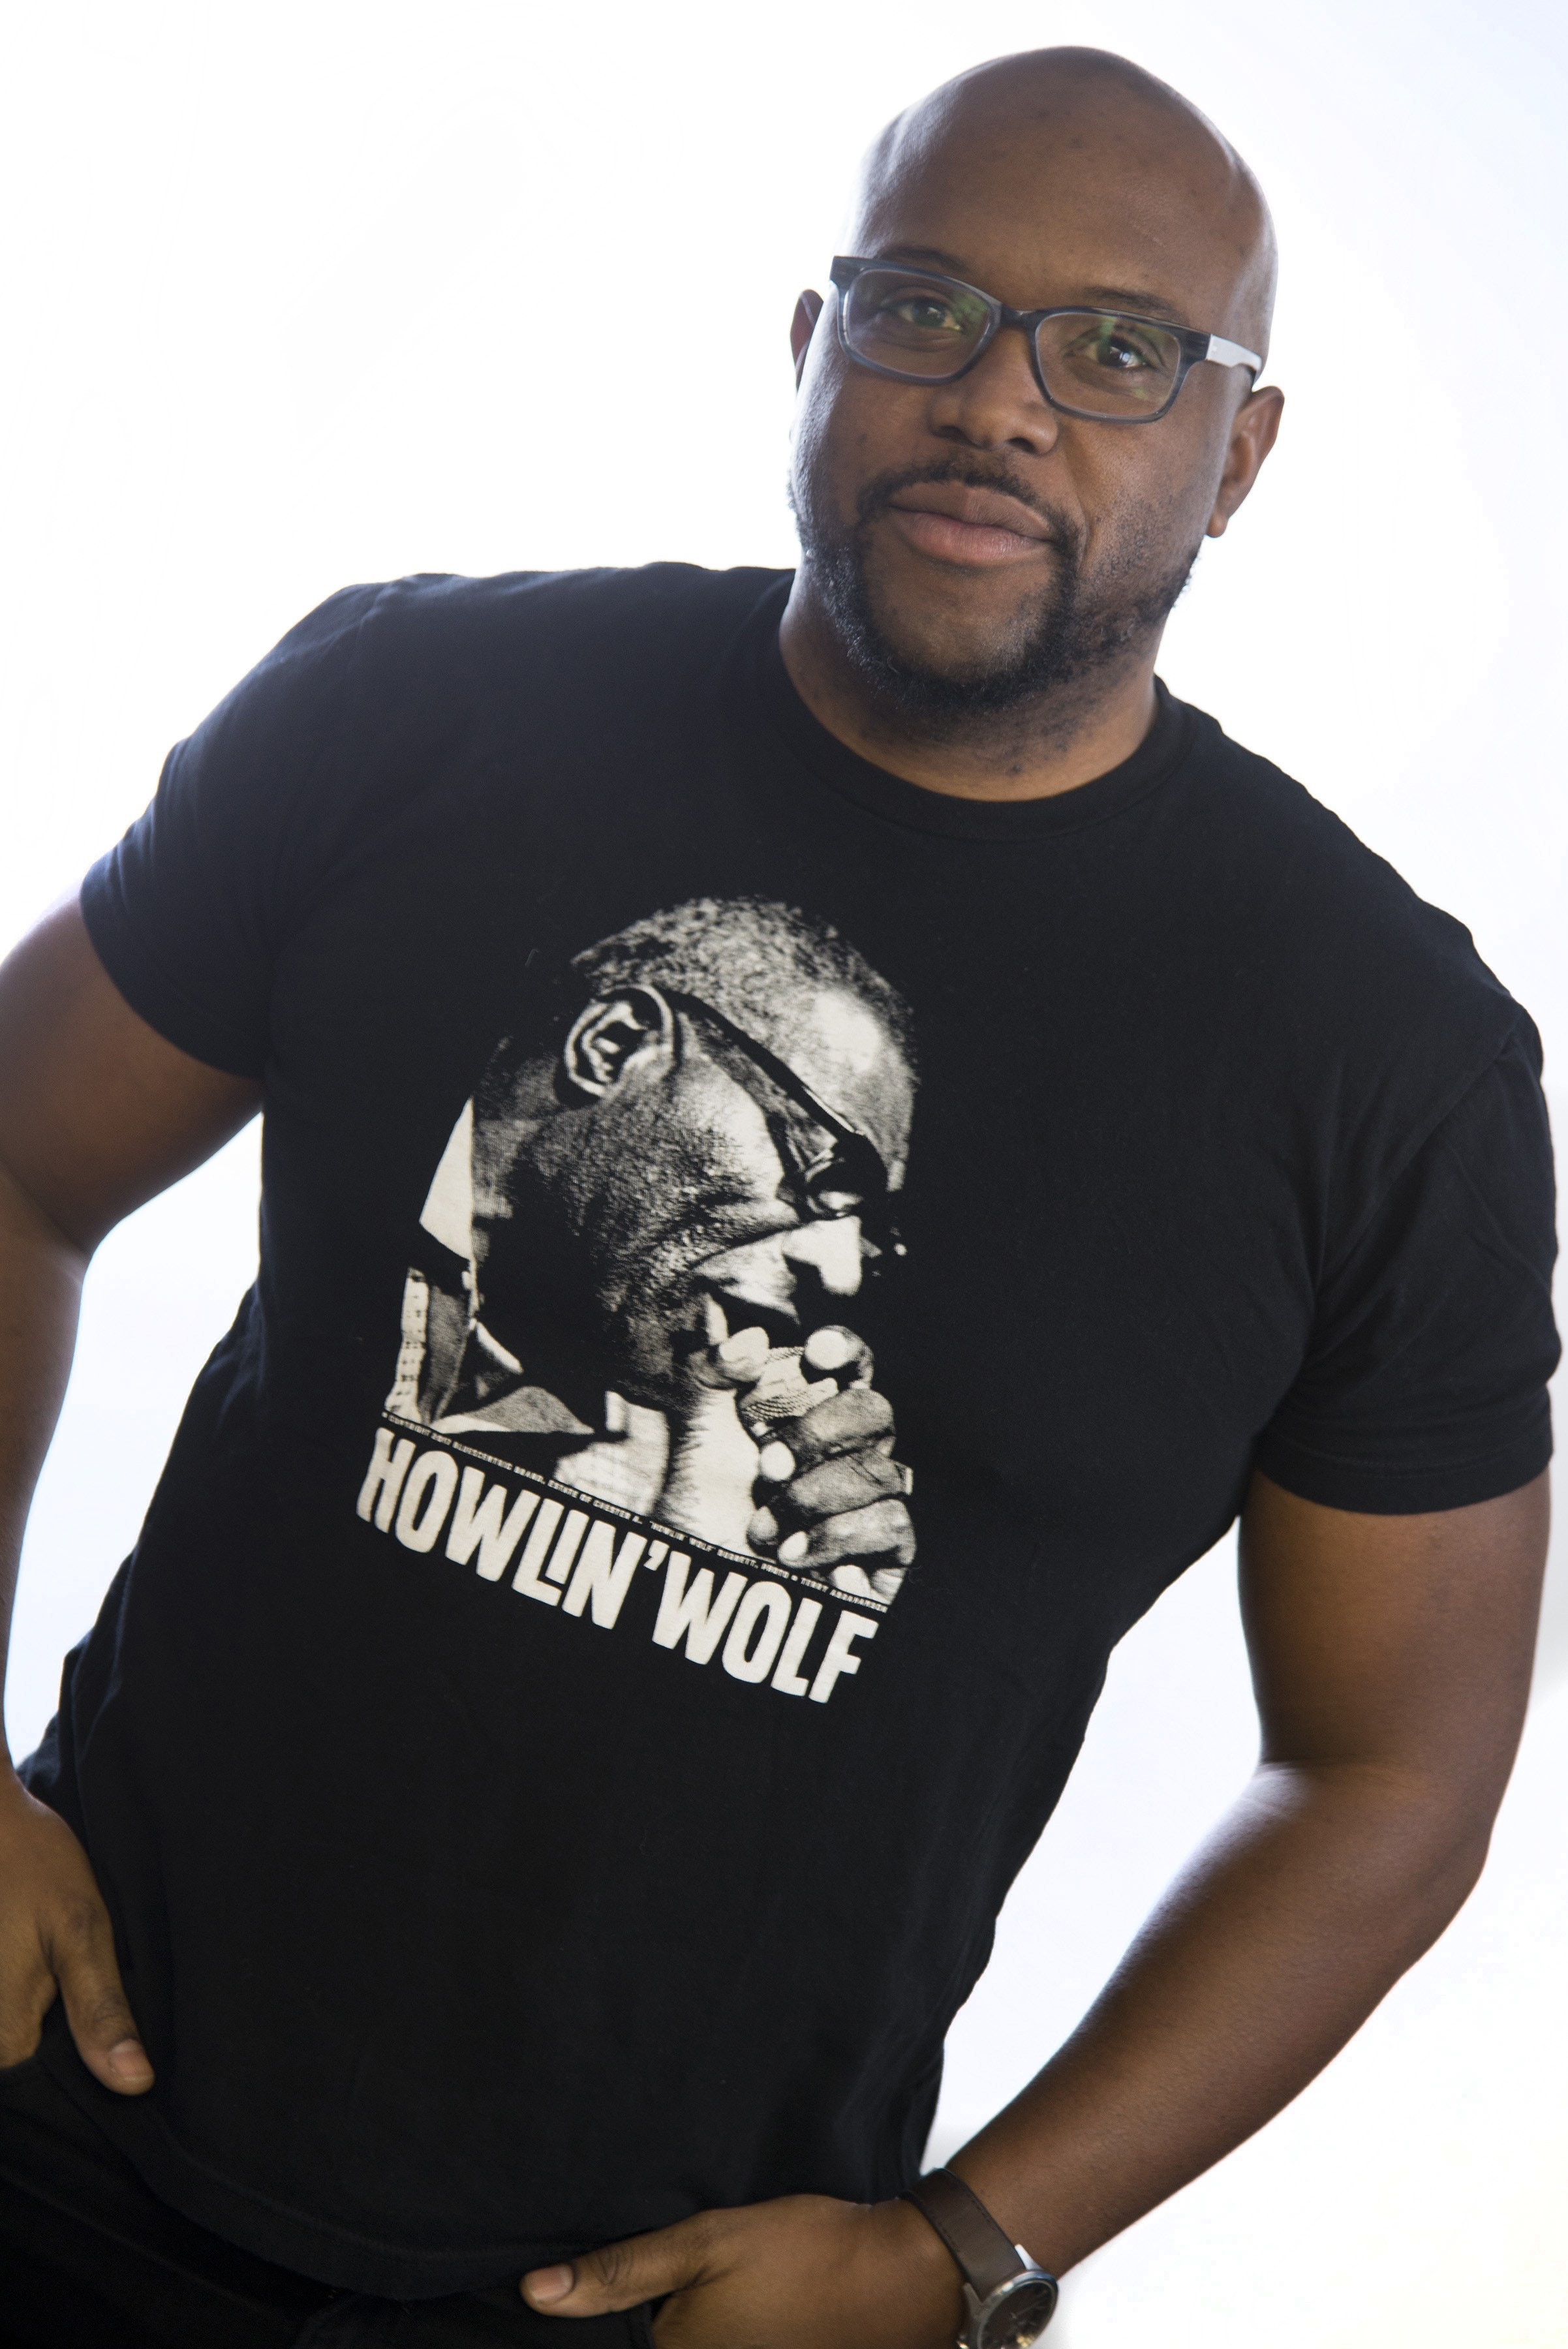 idris goodwin in a cool howlin wolf t-shirt